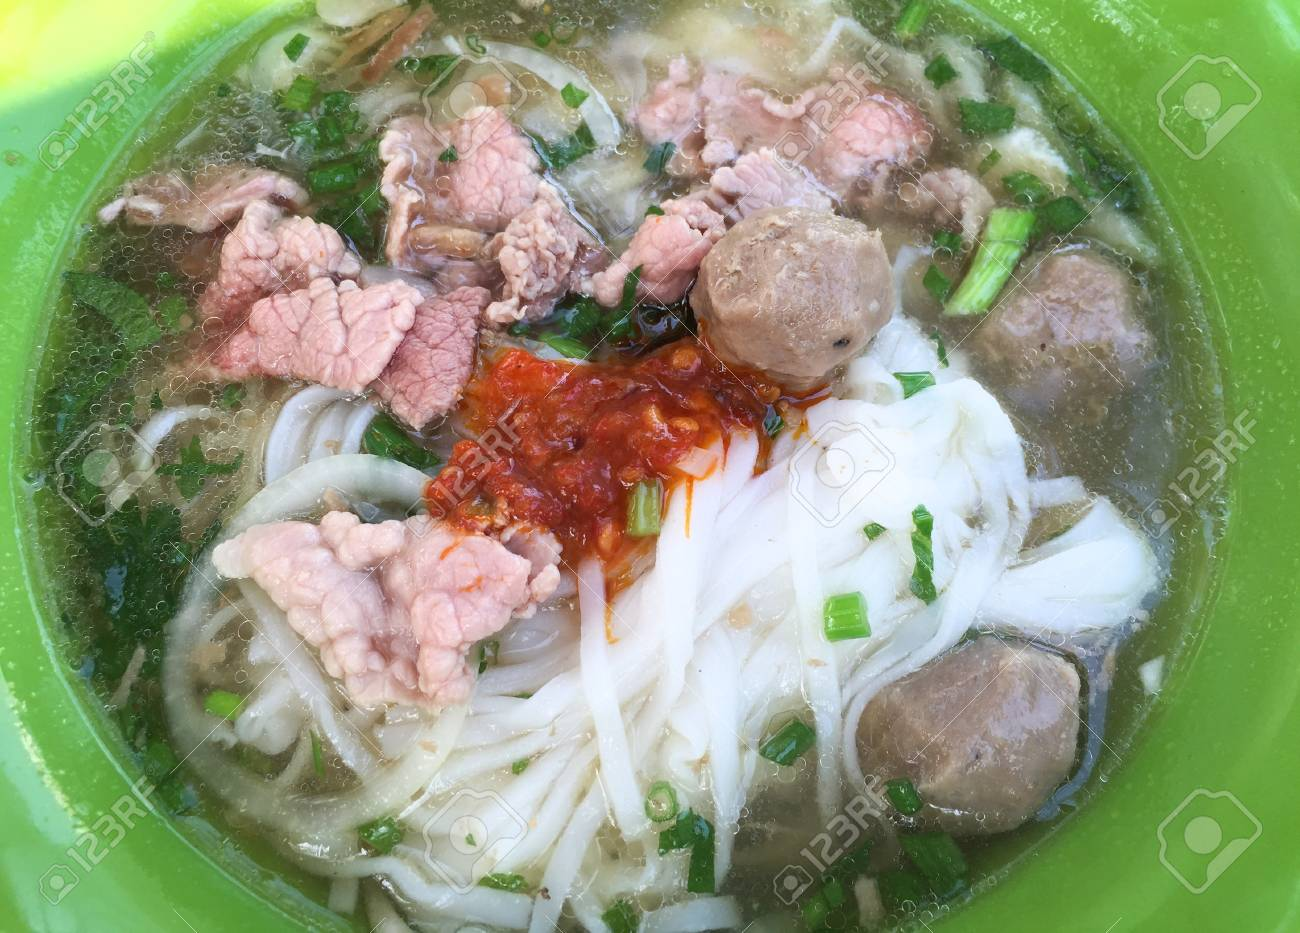 Bowl Of Vietnamese Pho Noodle Soup With Rare Beef Tendon Tripe Stock Photo Picture And Royalty Free Image Image 79500140